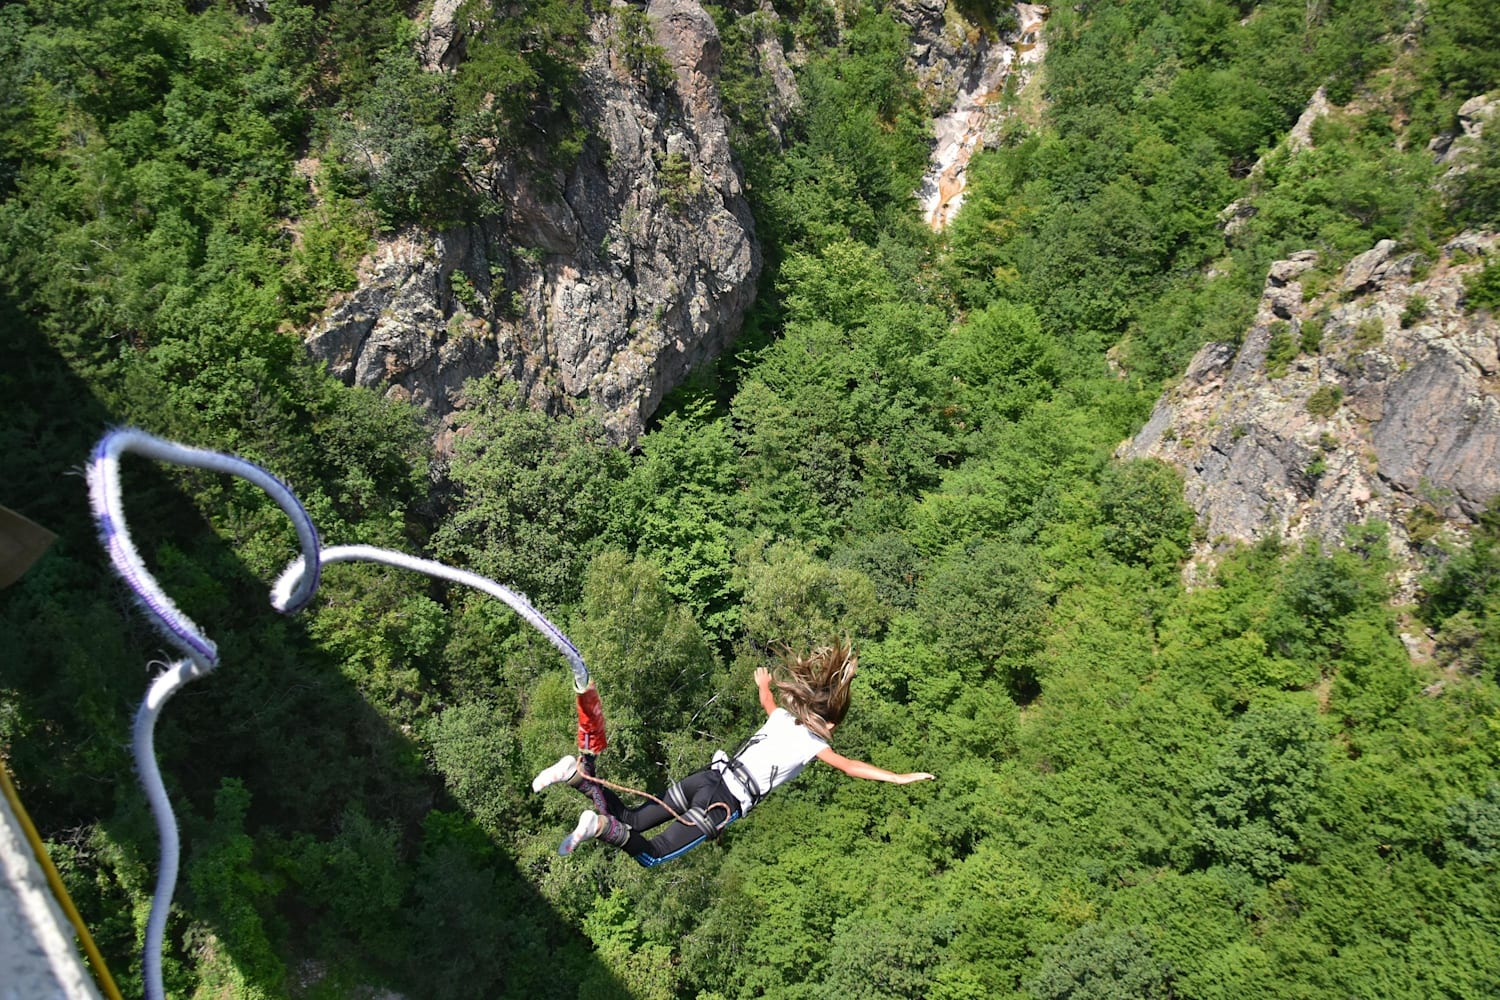 Bungee Jumping.Best Bungee Jumps In Europe 13 Big Adrenaline Rushes